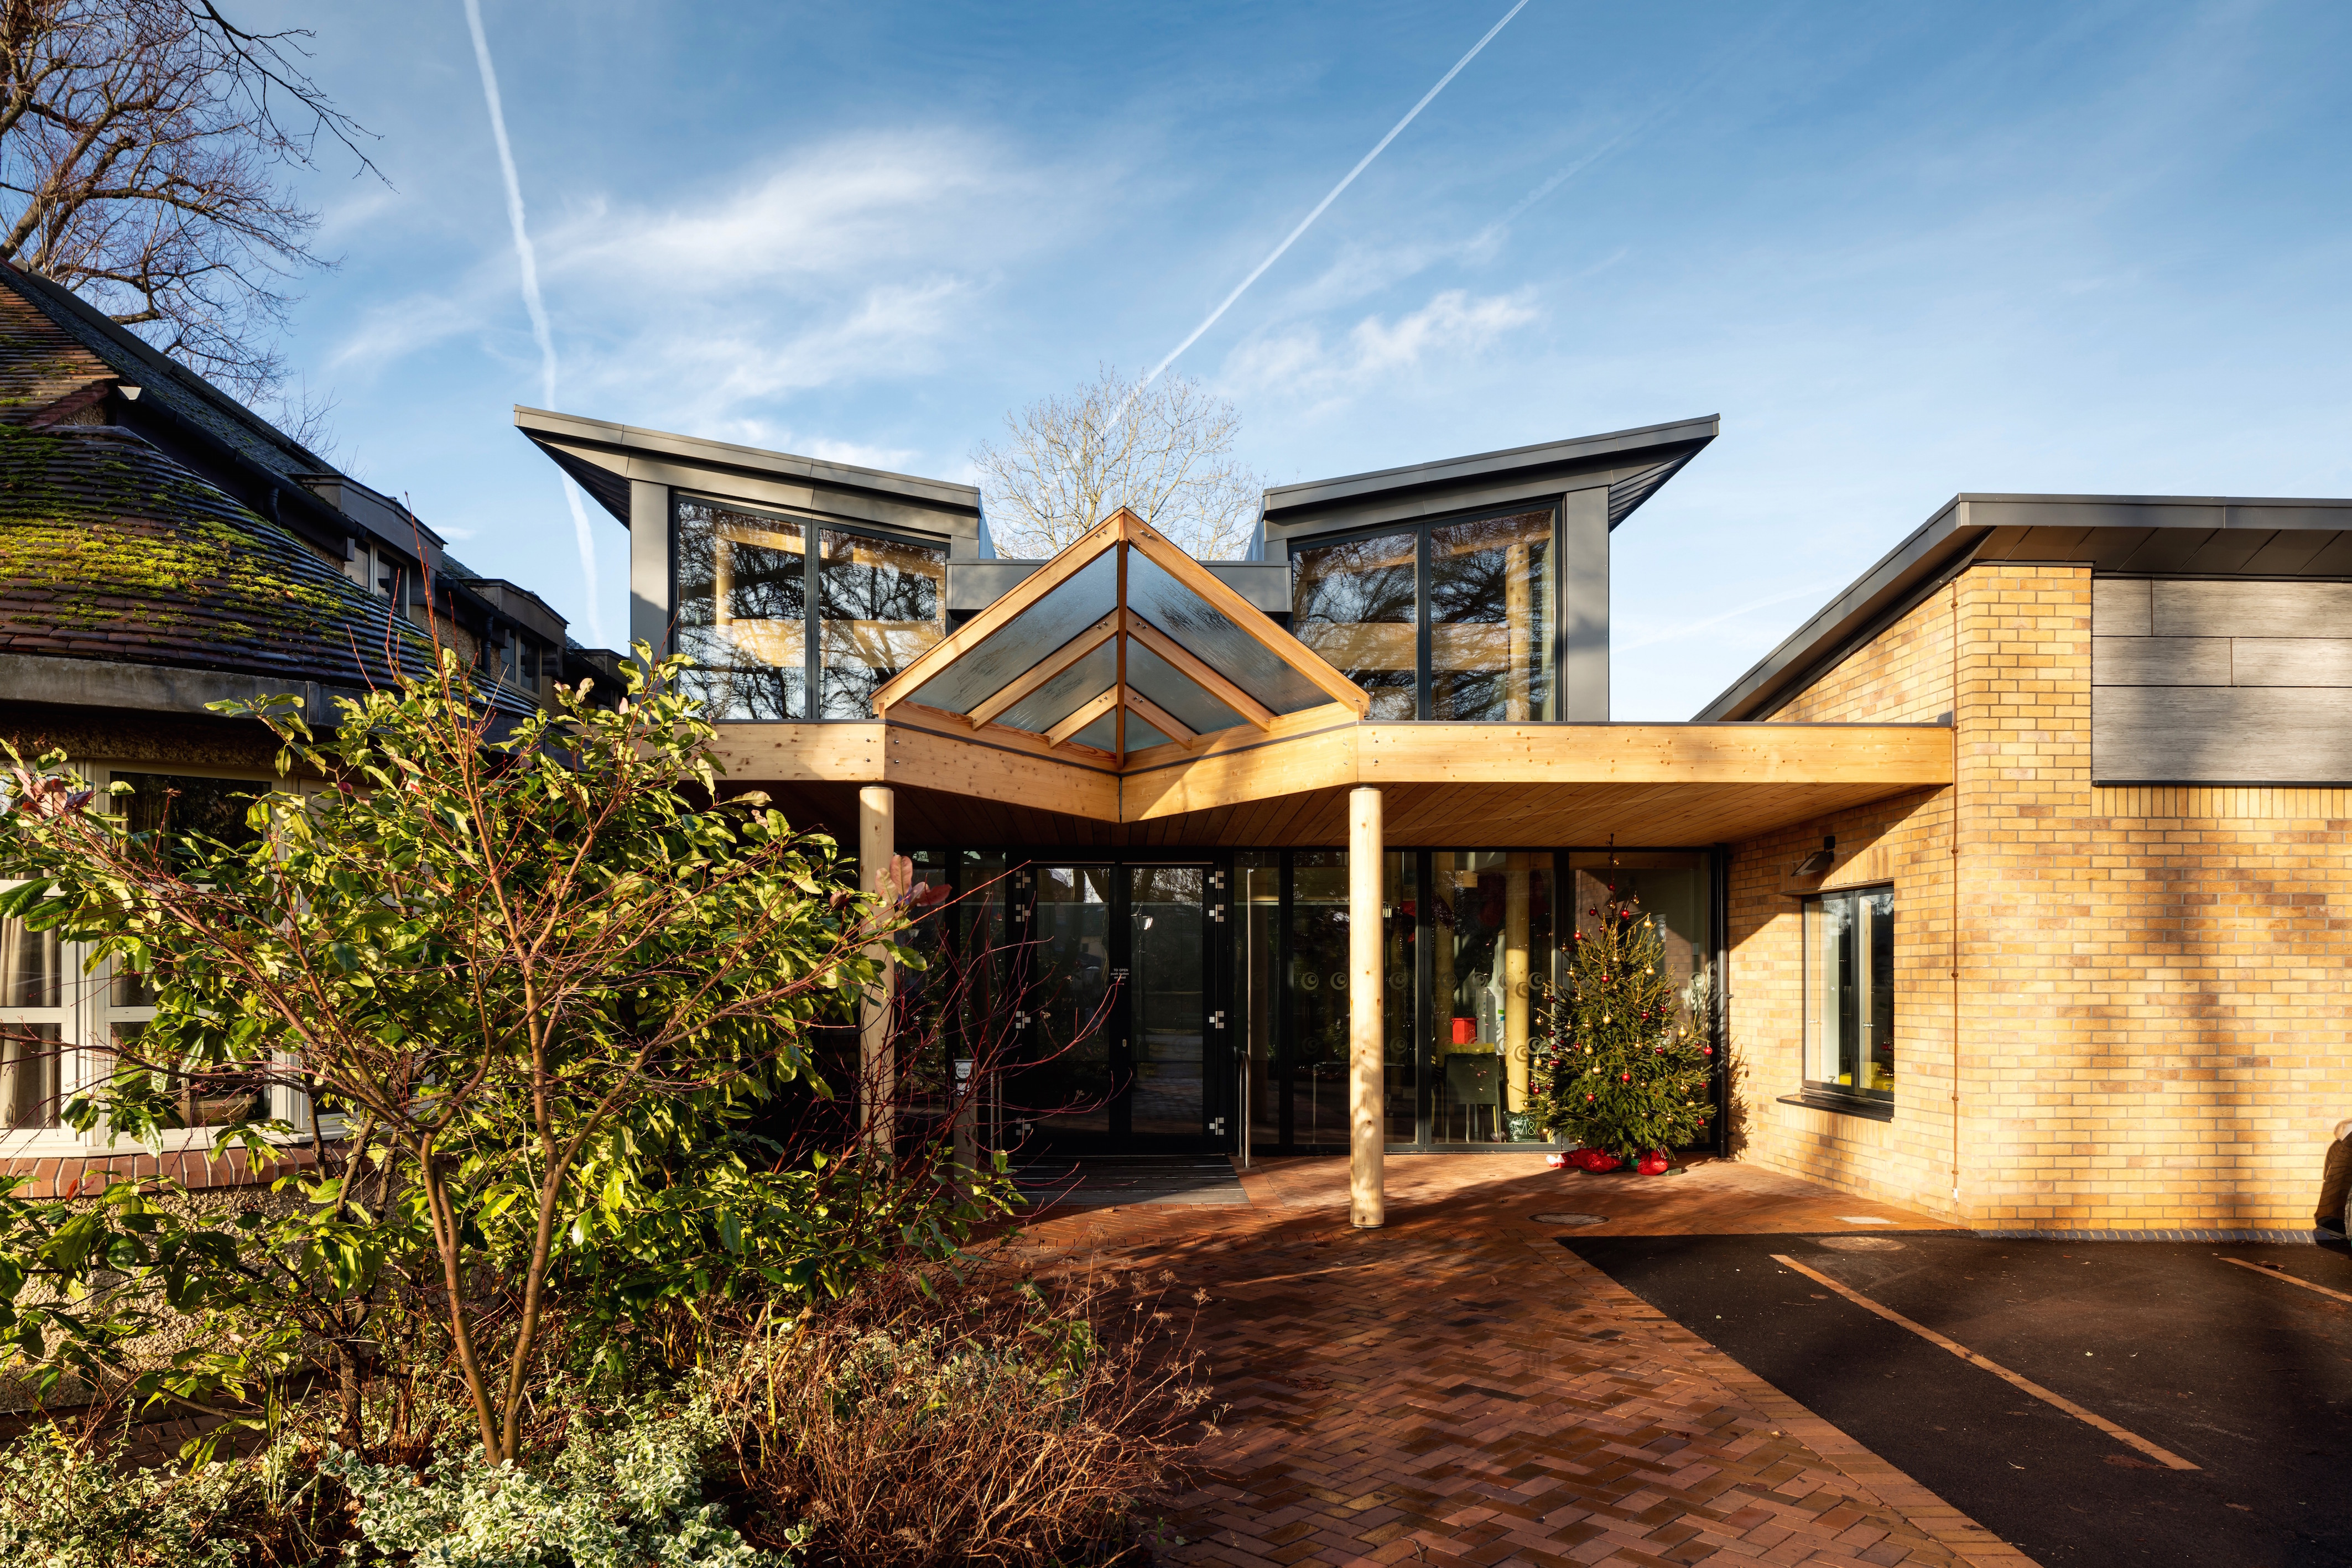 Barnabas Building shortlisted for RICS Awards 2017